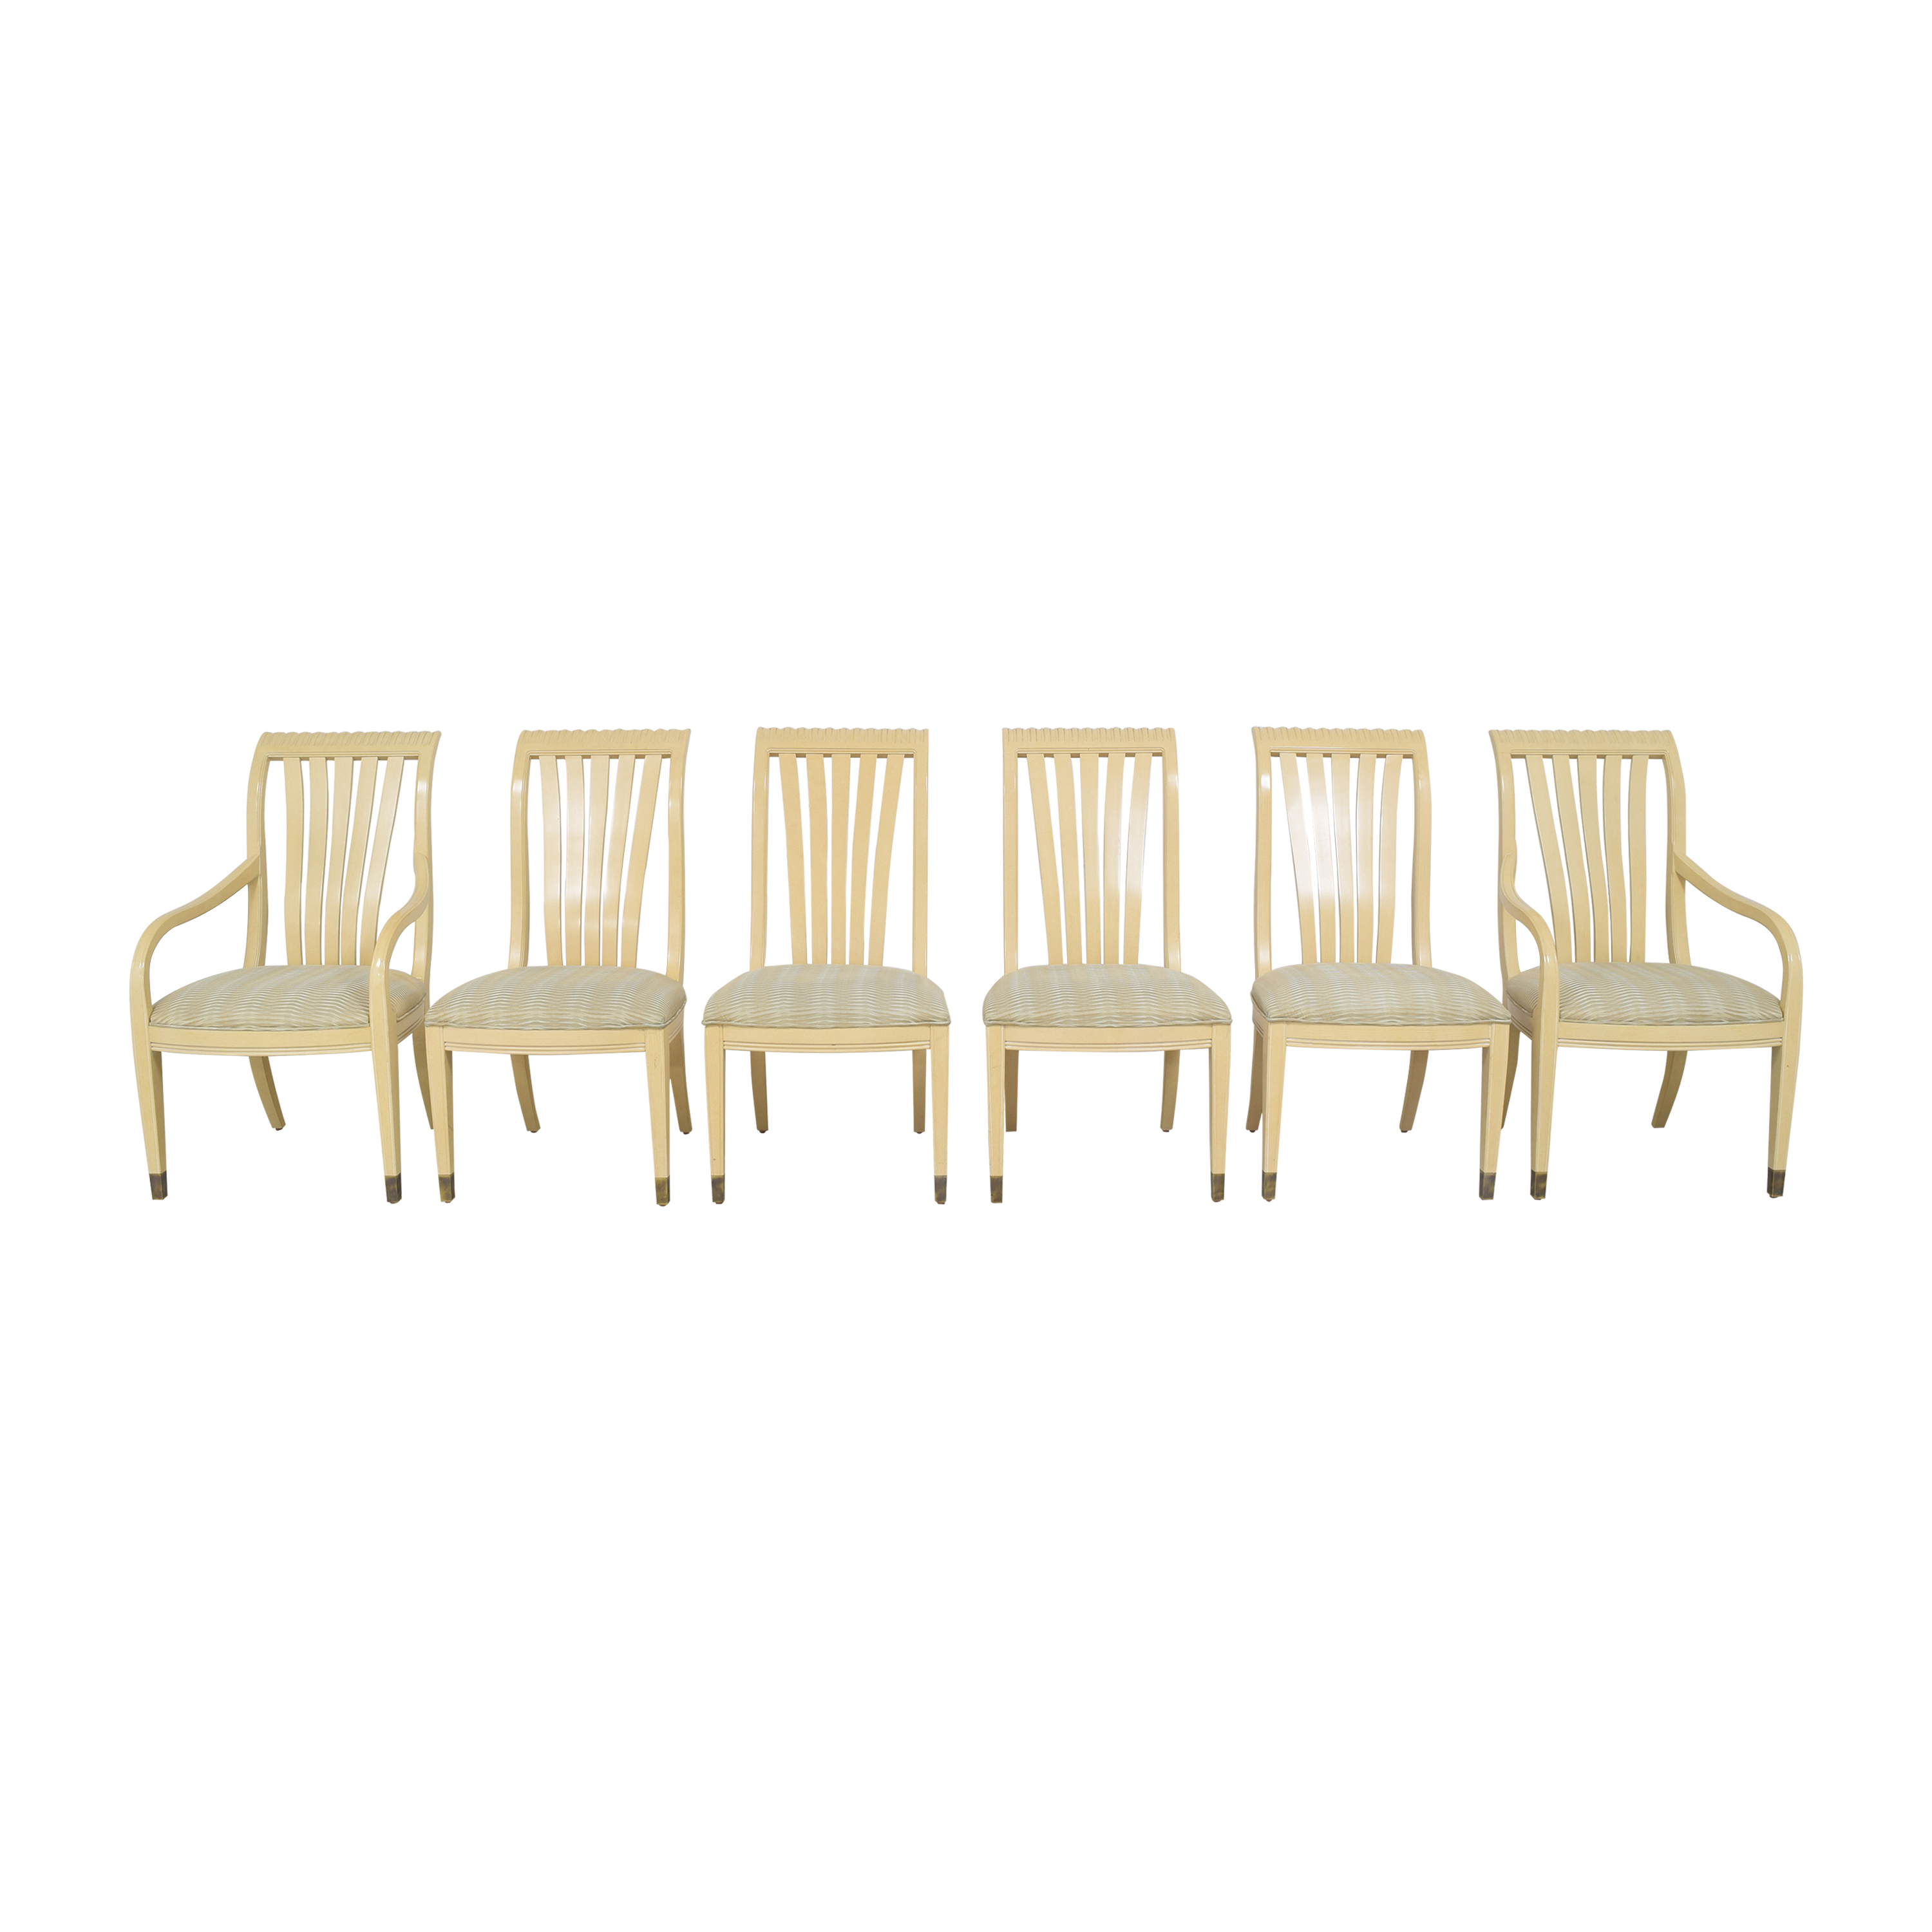 Century Furniture Century Furniture Upholstered Dining Chairs used